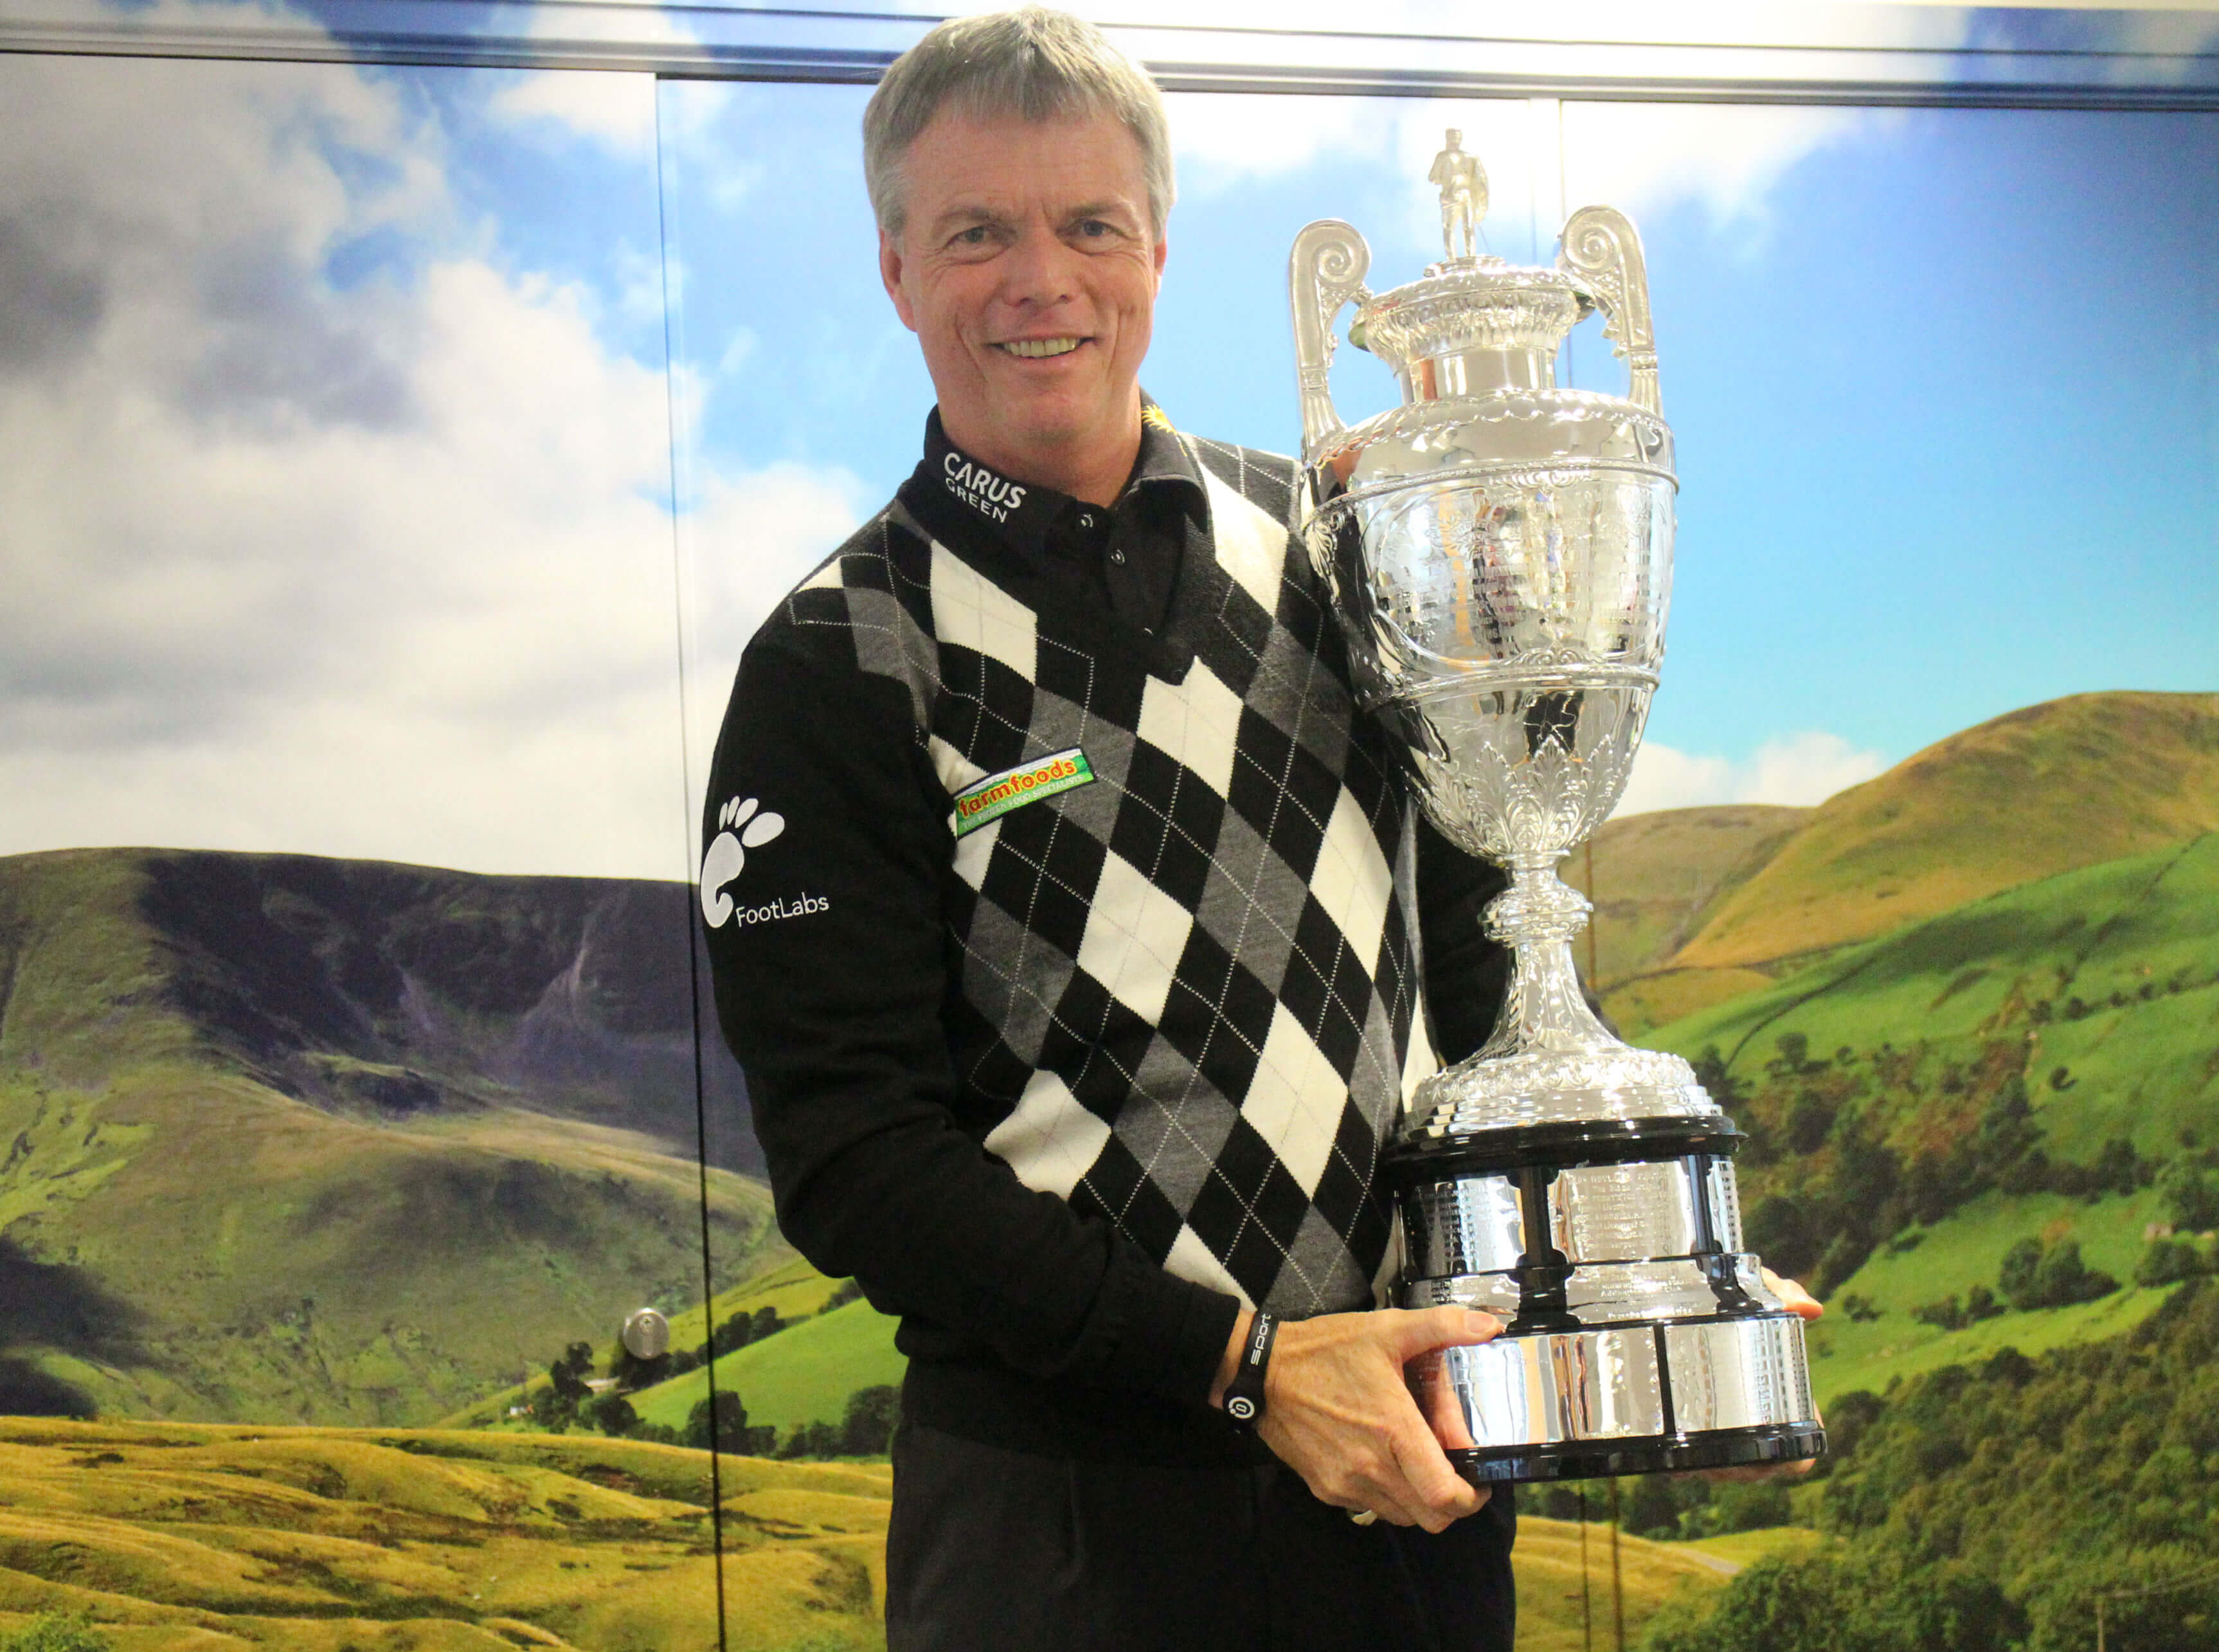 Gary with trophy